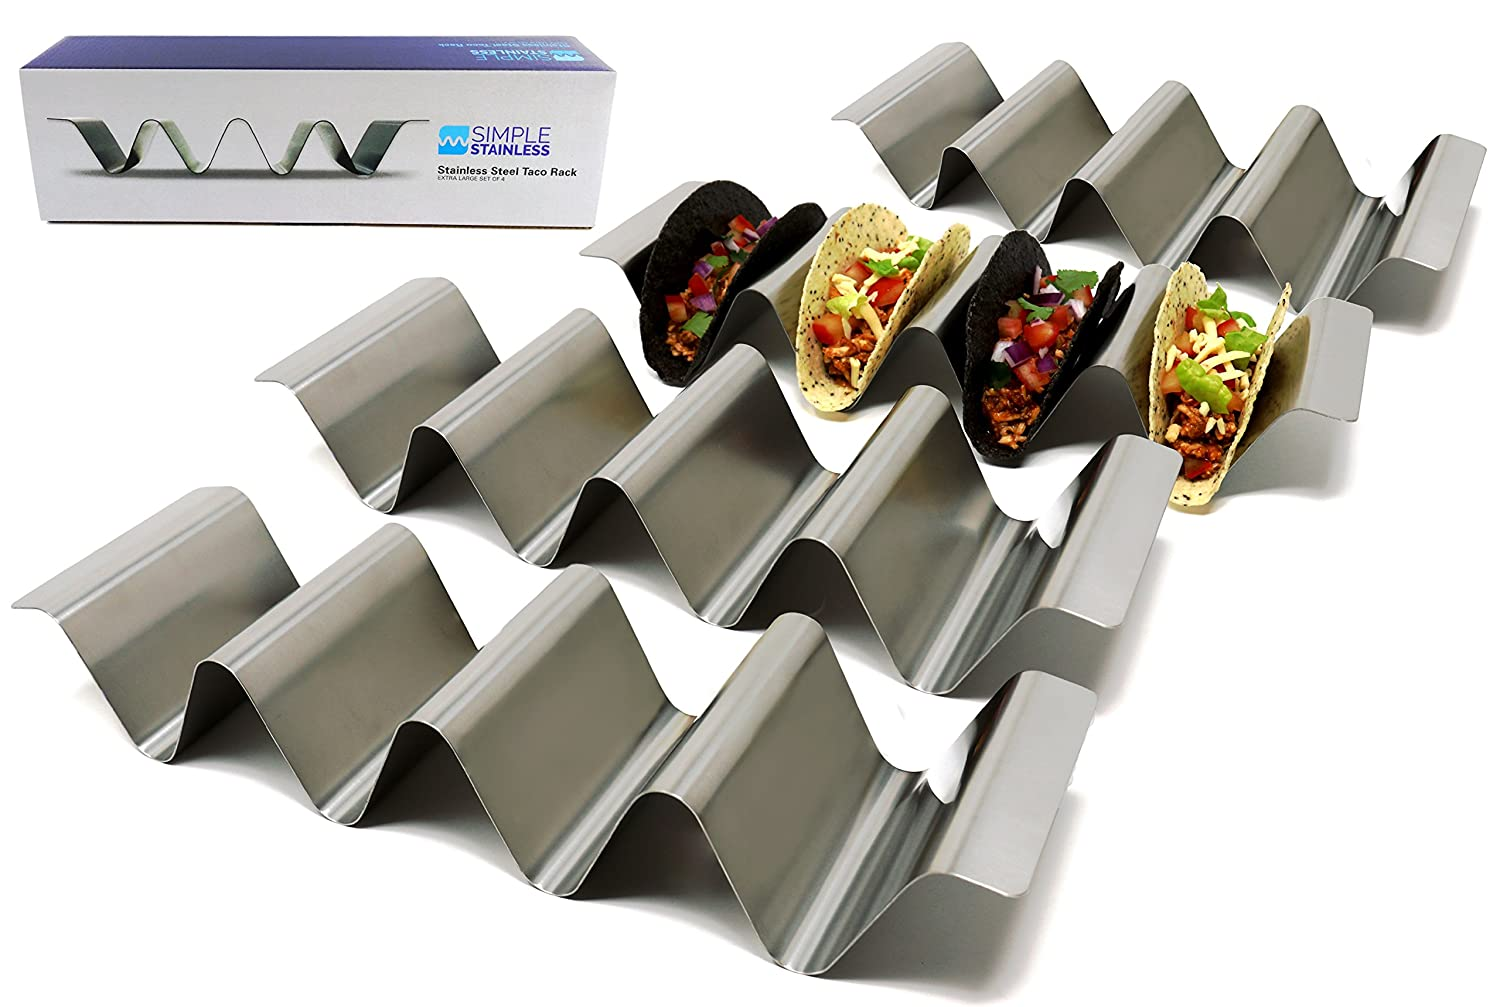 Premium Taco Holder Stands - Set of 4 - Crafted from Food Grade Stainless Steel - Each Rack Holds 4 Tacos/Tortillas - with Handles and Round Groove Design - For Restaurant/Home - By SimpleStainless SS4XL